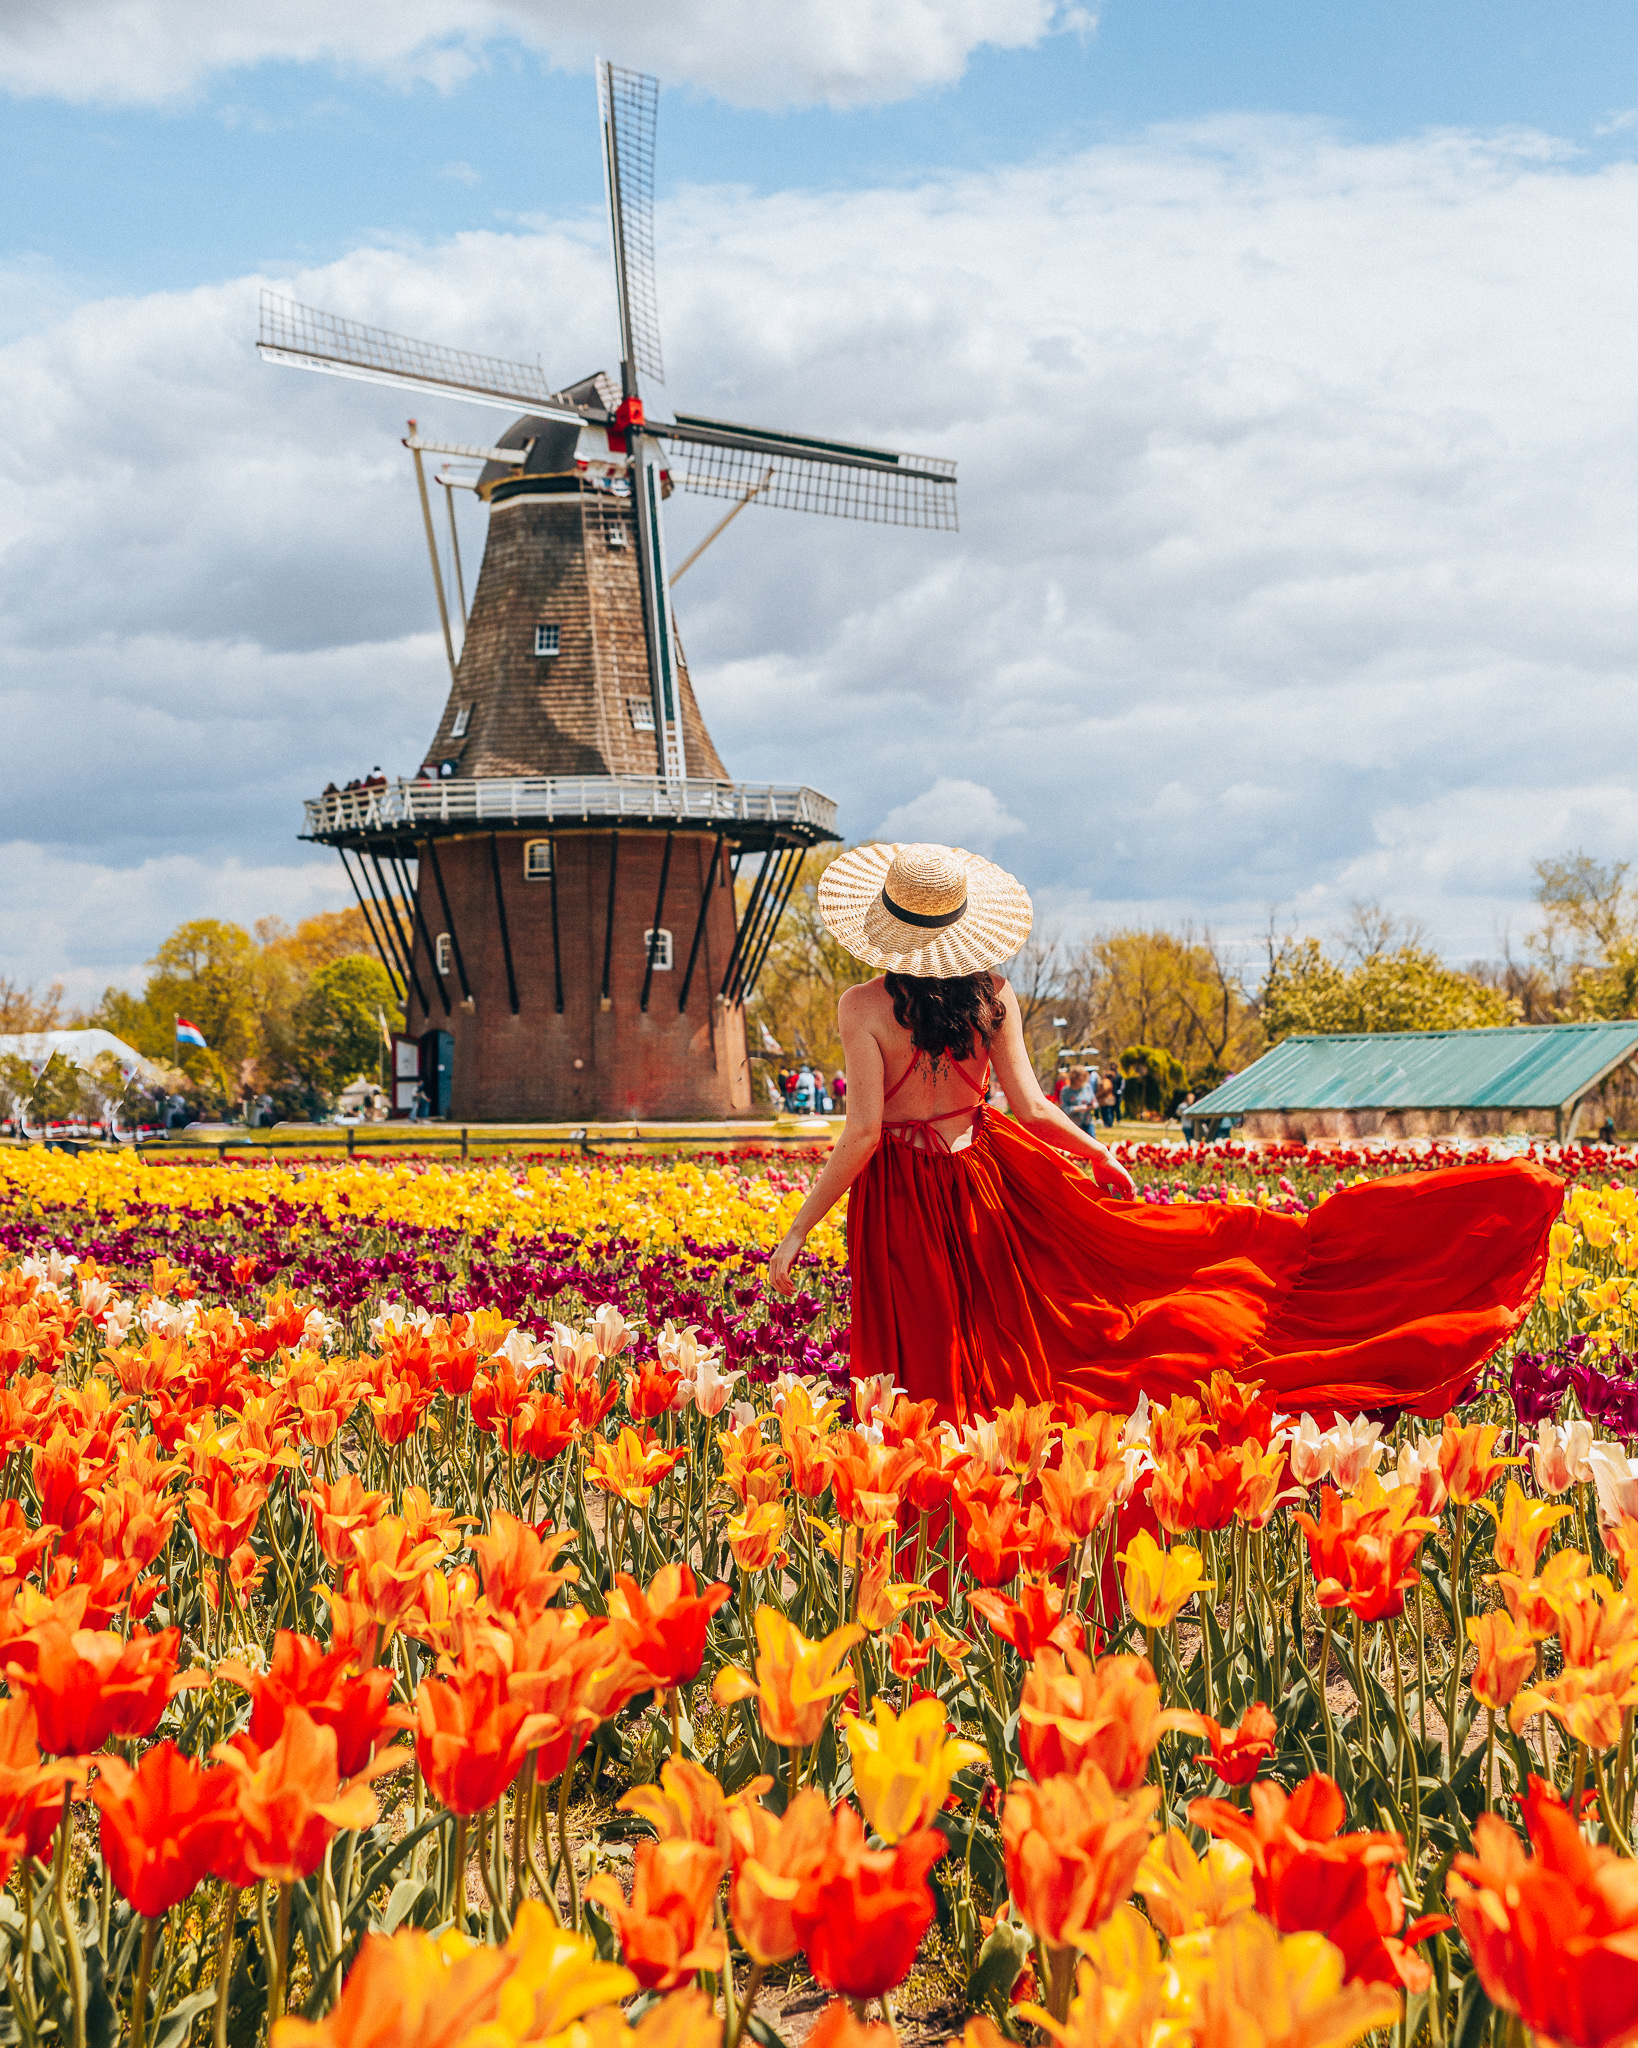 Woman standing in red dress in front of windmill in a tulip field at the Windmill Island Gardens in Holland Michigan